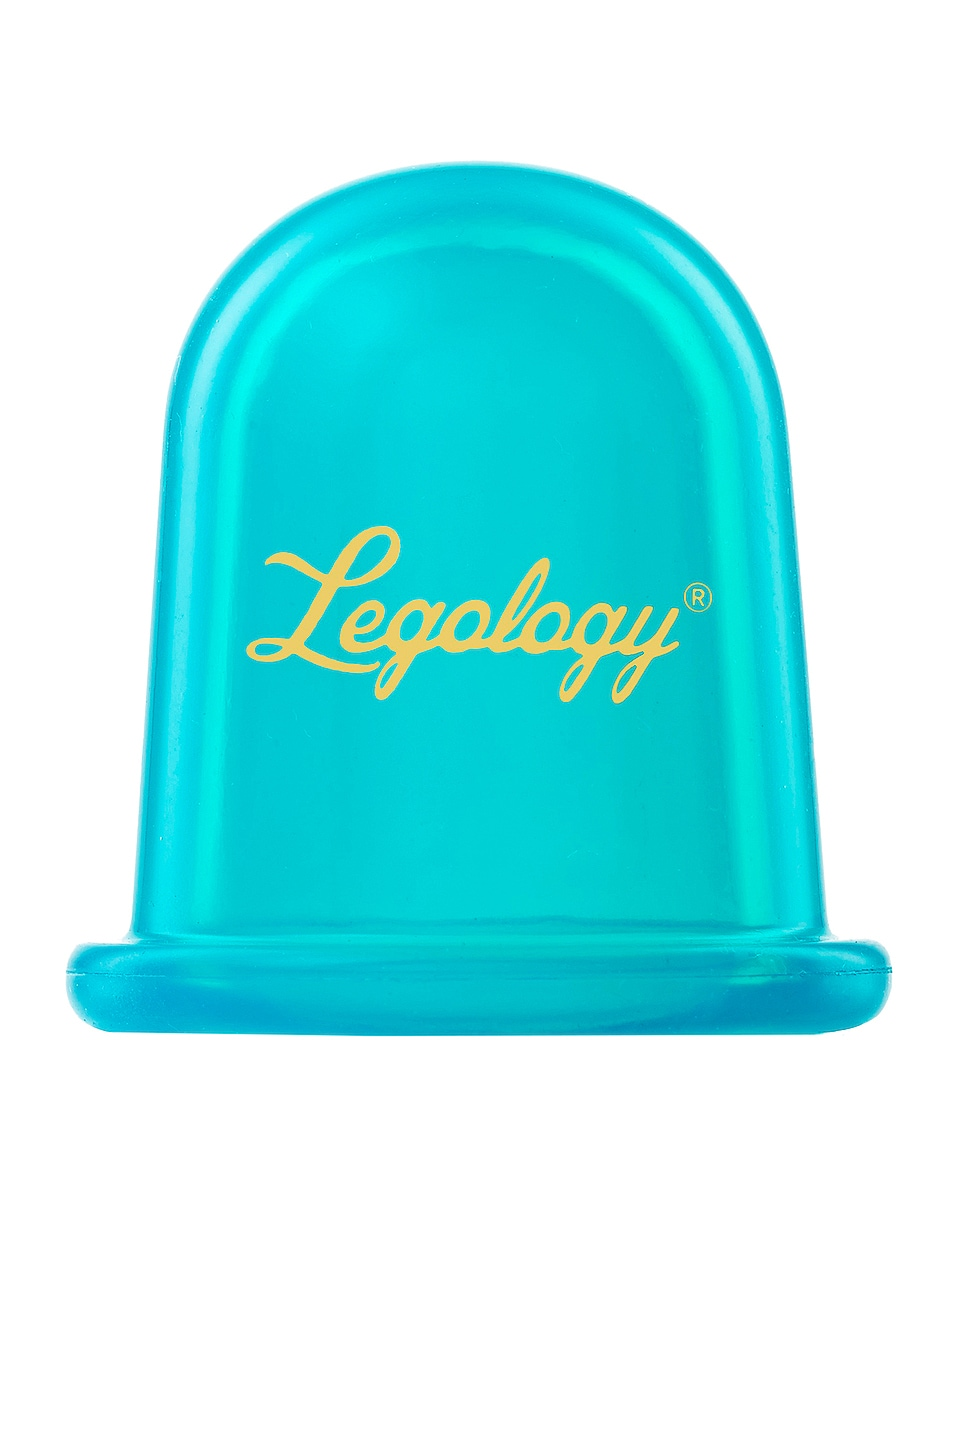 Legology OUTIL CIRCU-LITE SQUEEZE THERAPY